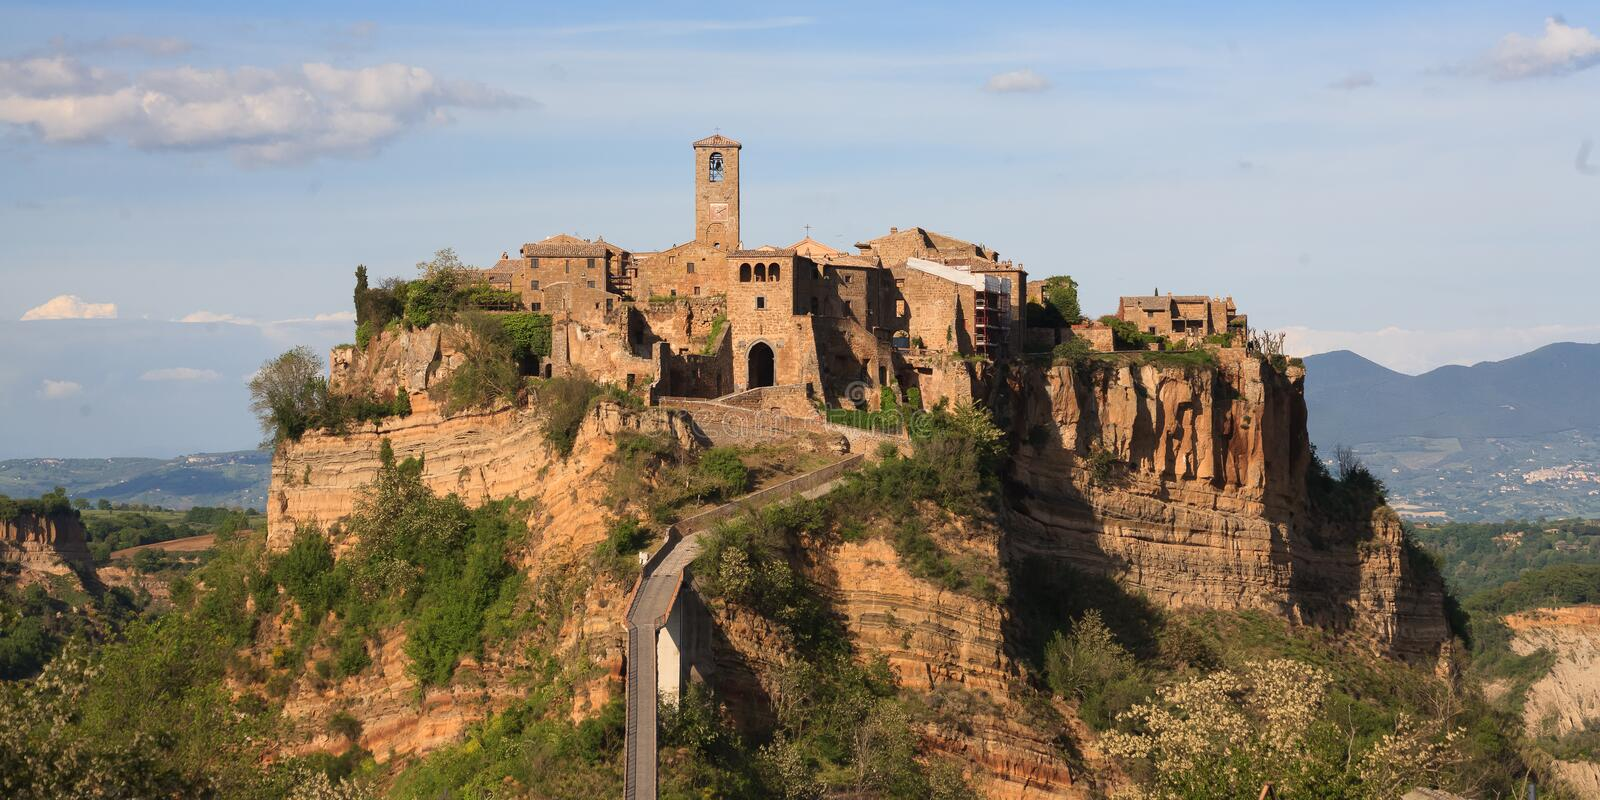 Civita di Bagnoregio images stock